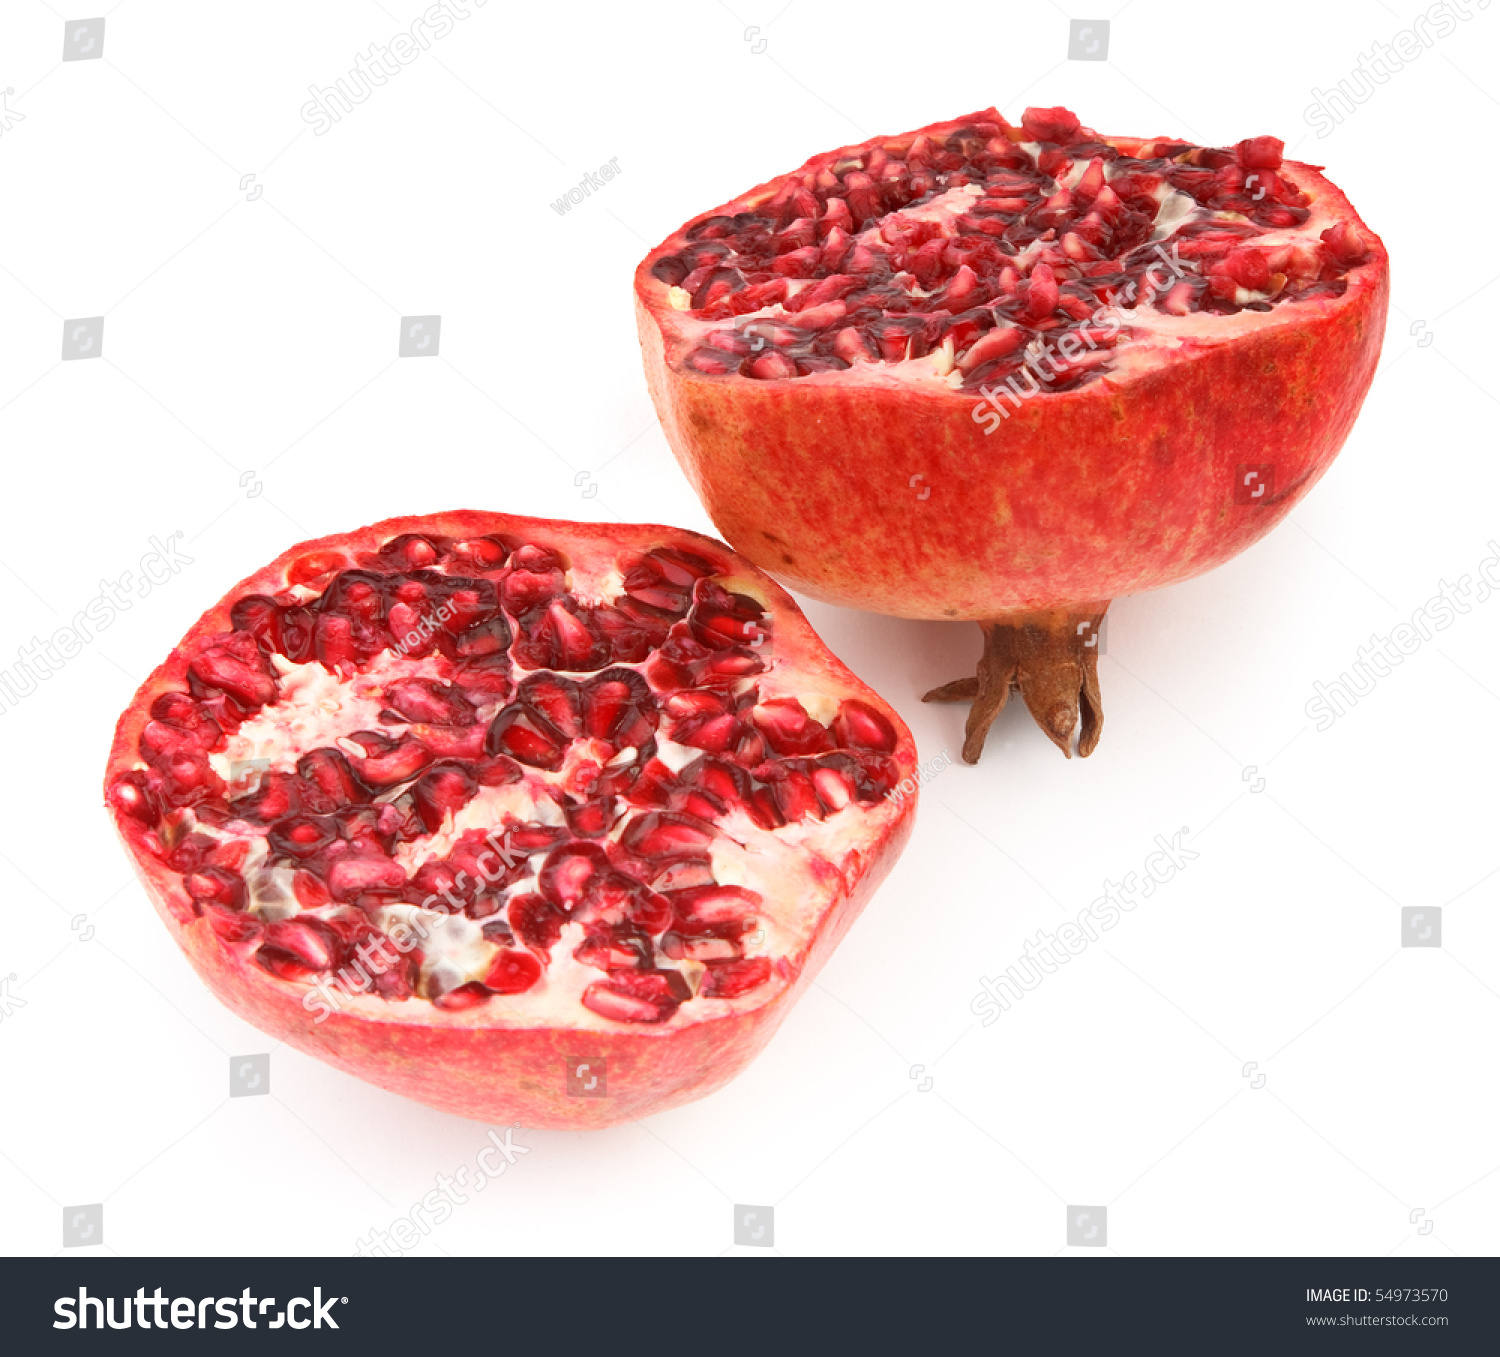 how to cut pomegranate fruit